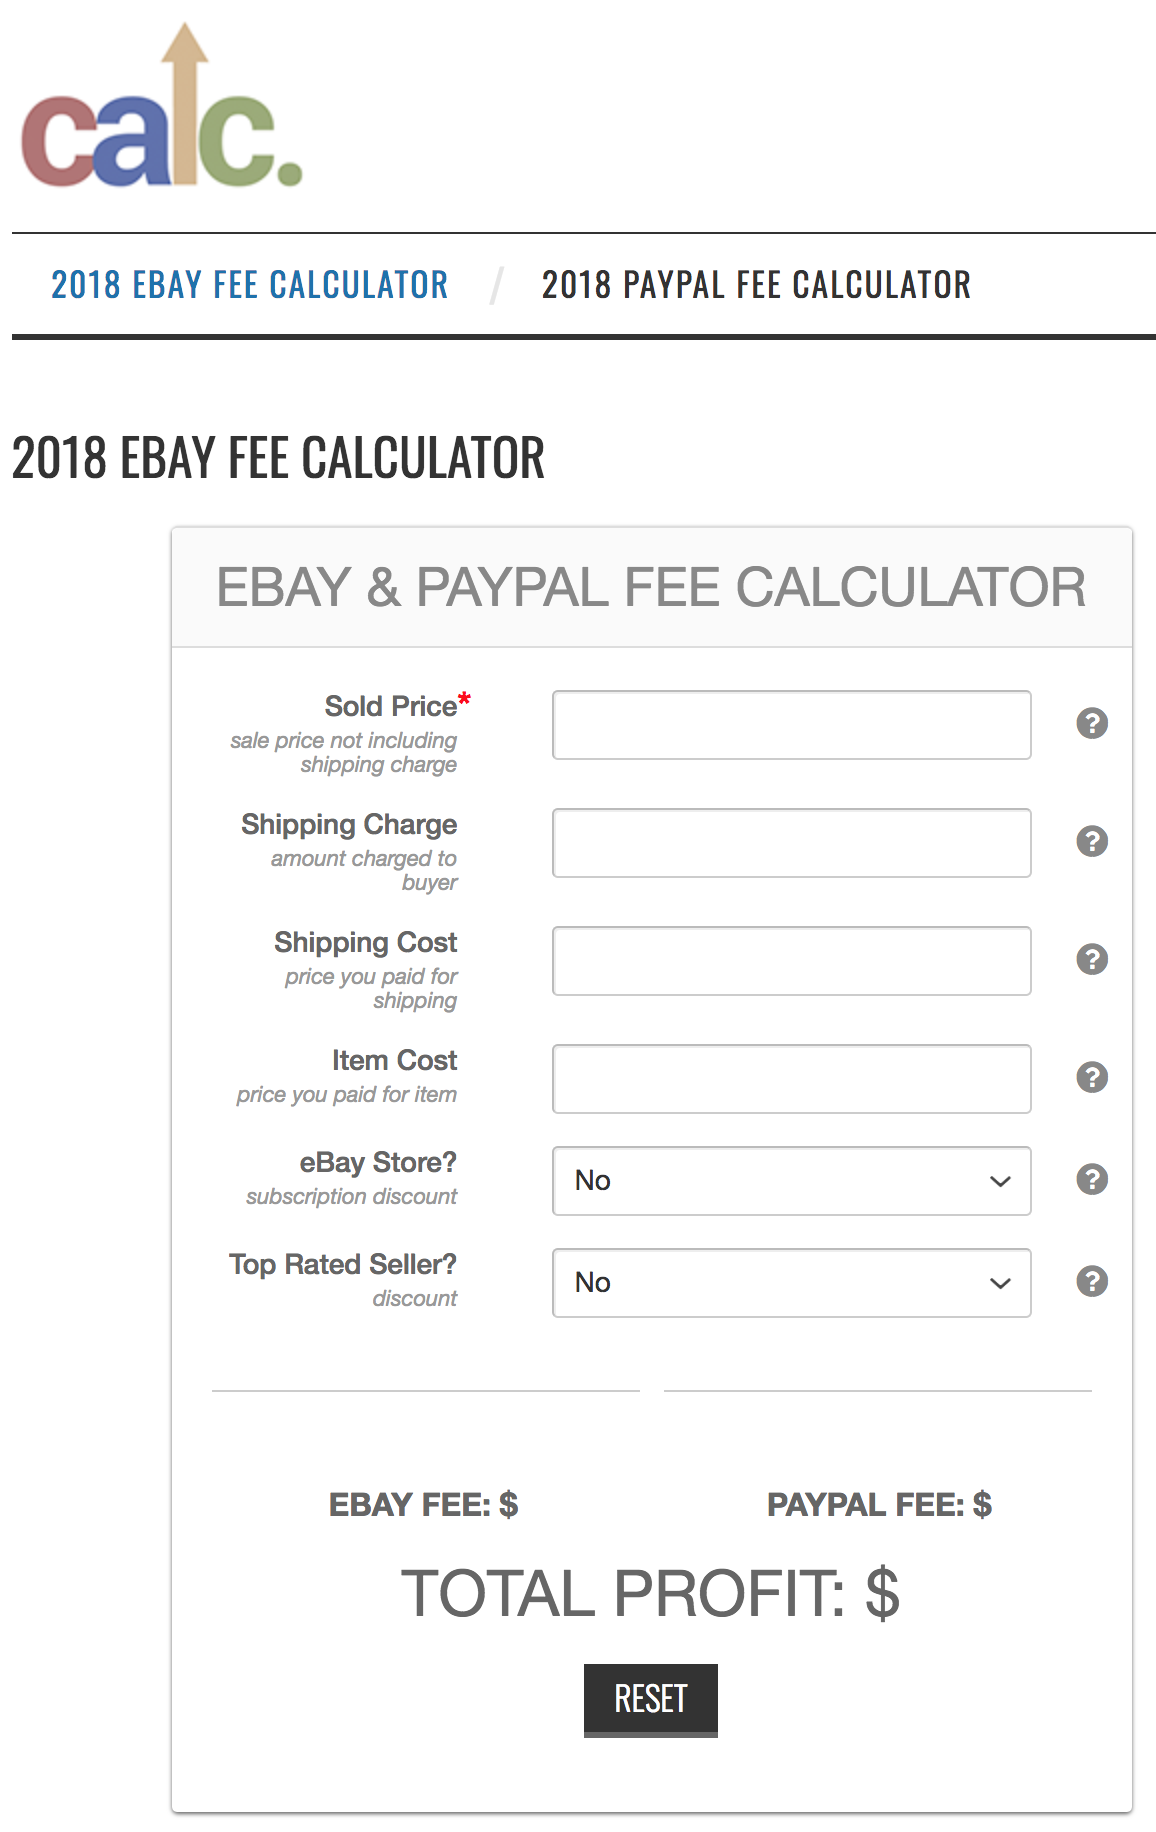 10 Free eBay Tools New Flippers and Resellers Must Check Out!